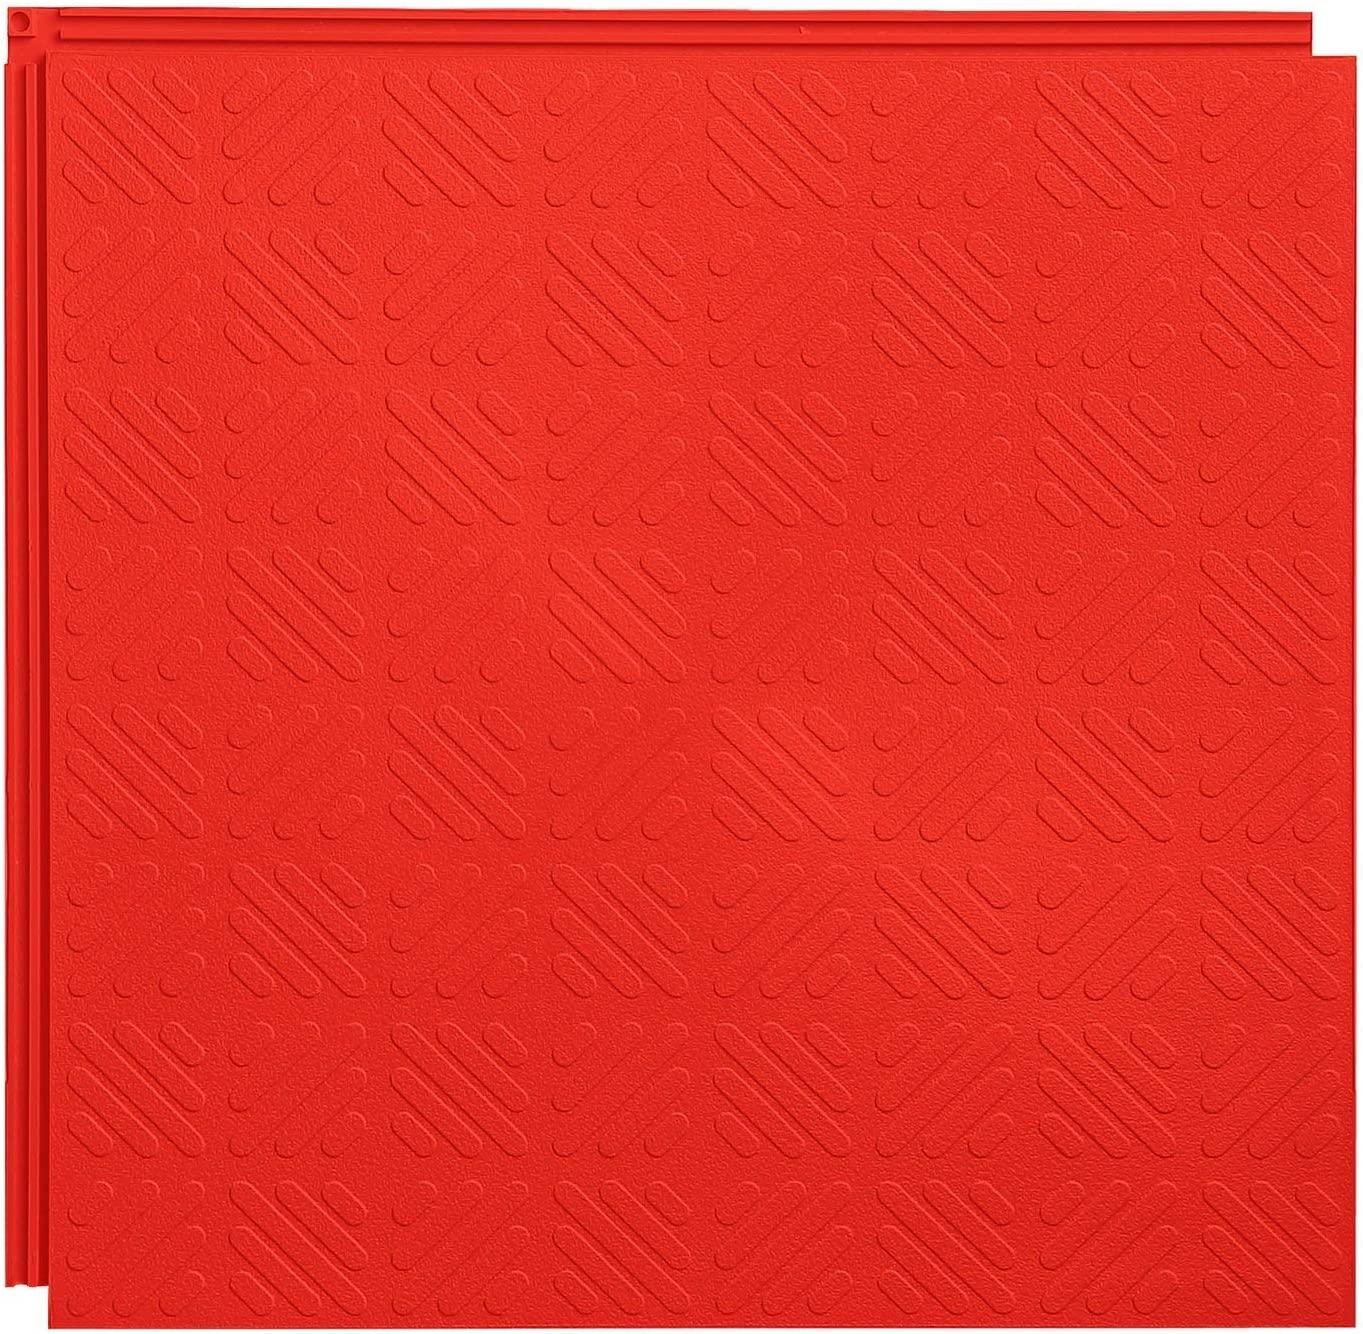 Resilia Flexible Interlocking Snap Floor Tiles – Protective Flooring for Your Garage, Home, Office or Gym, Red Color, Grid Texture, 12-inch, 0.25-inch, 10 Pack